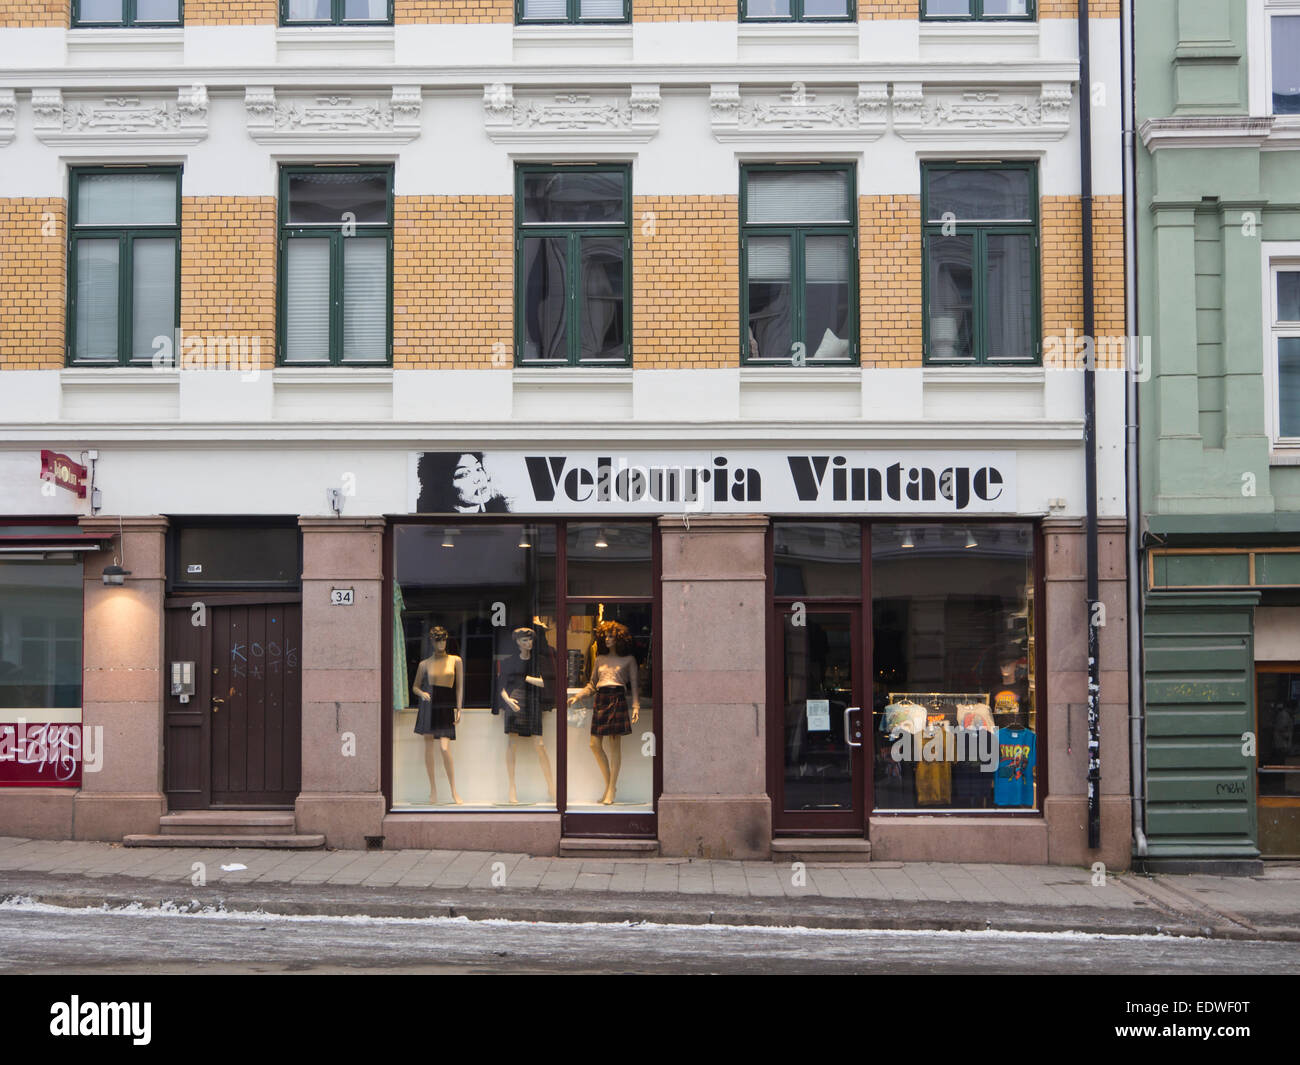 Norway clothing stores online